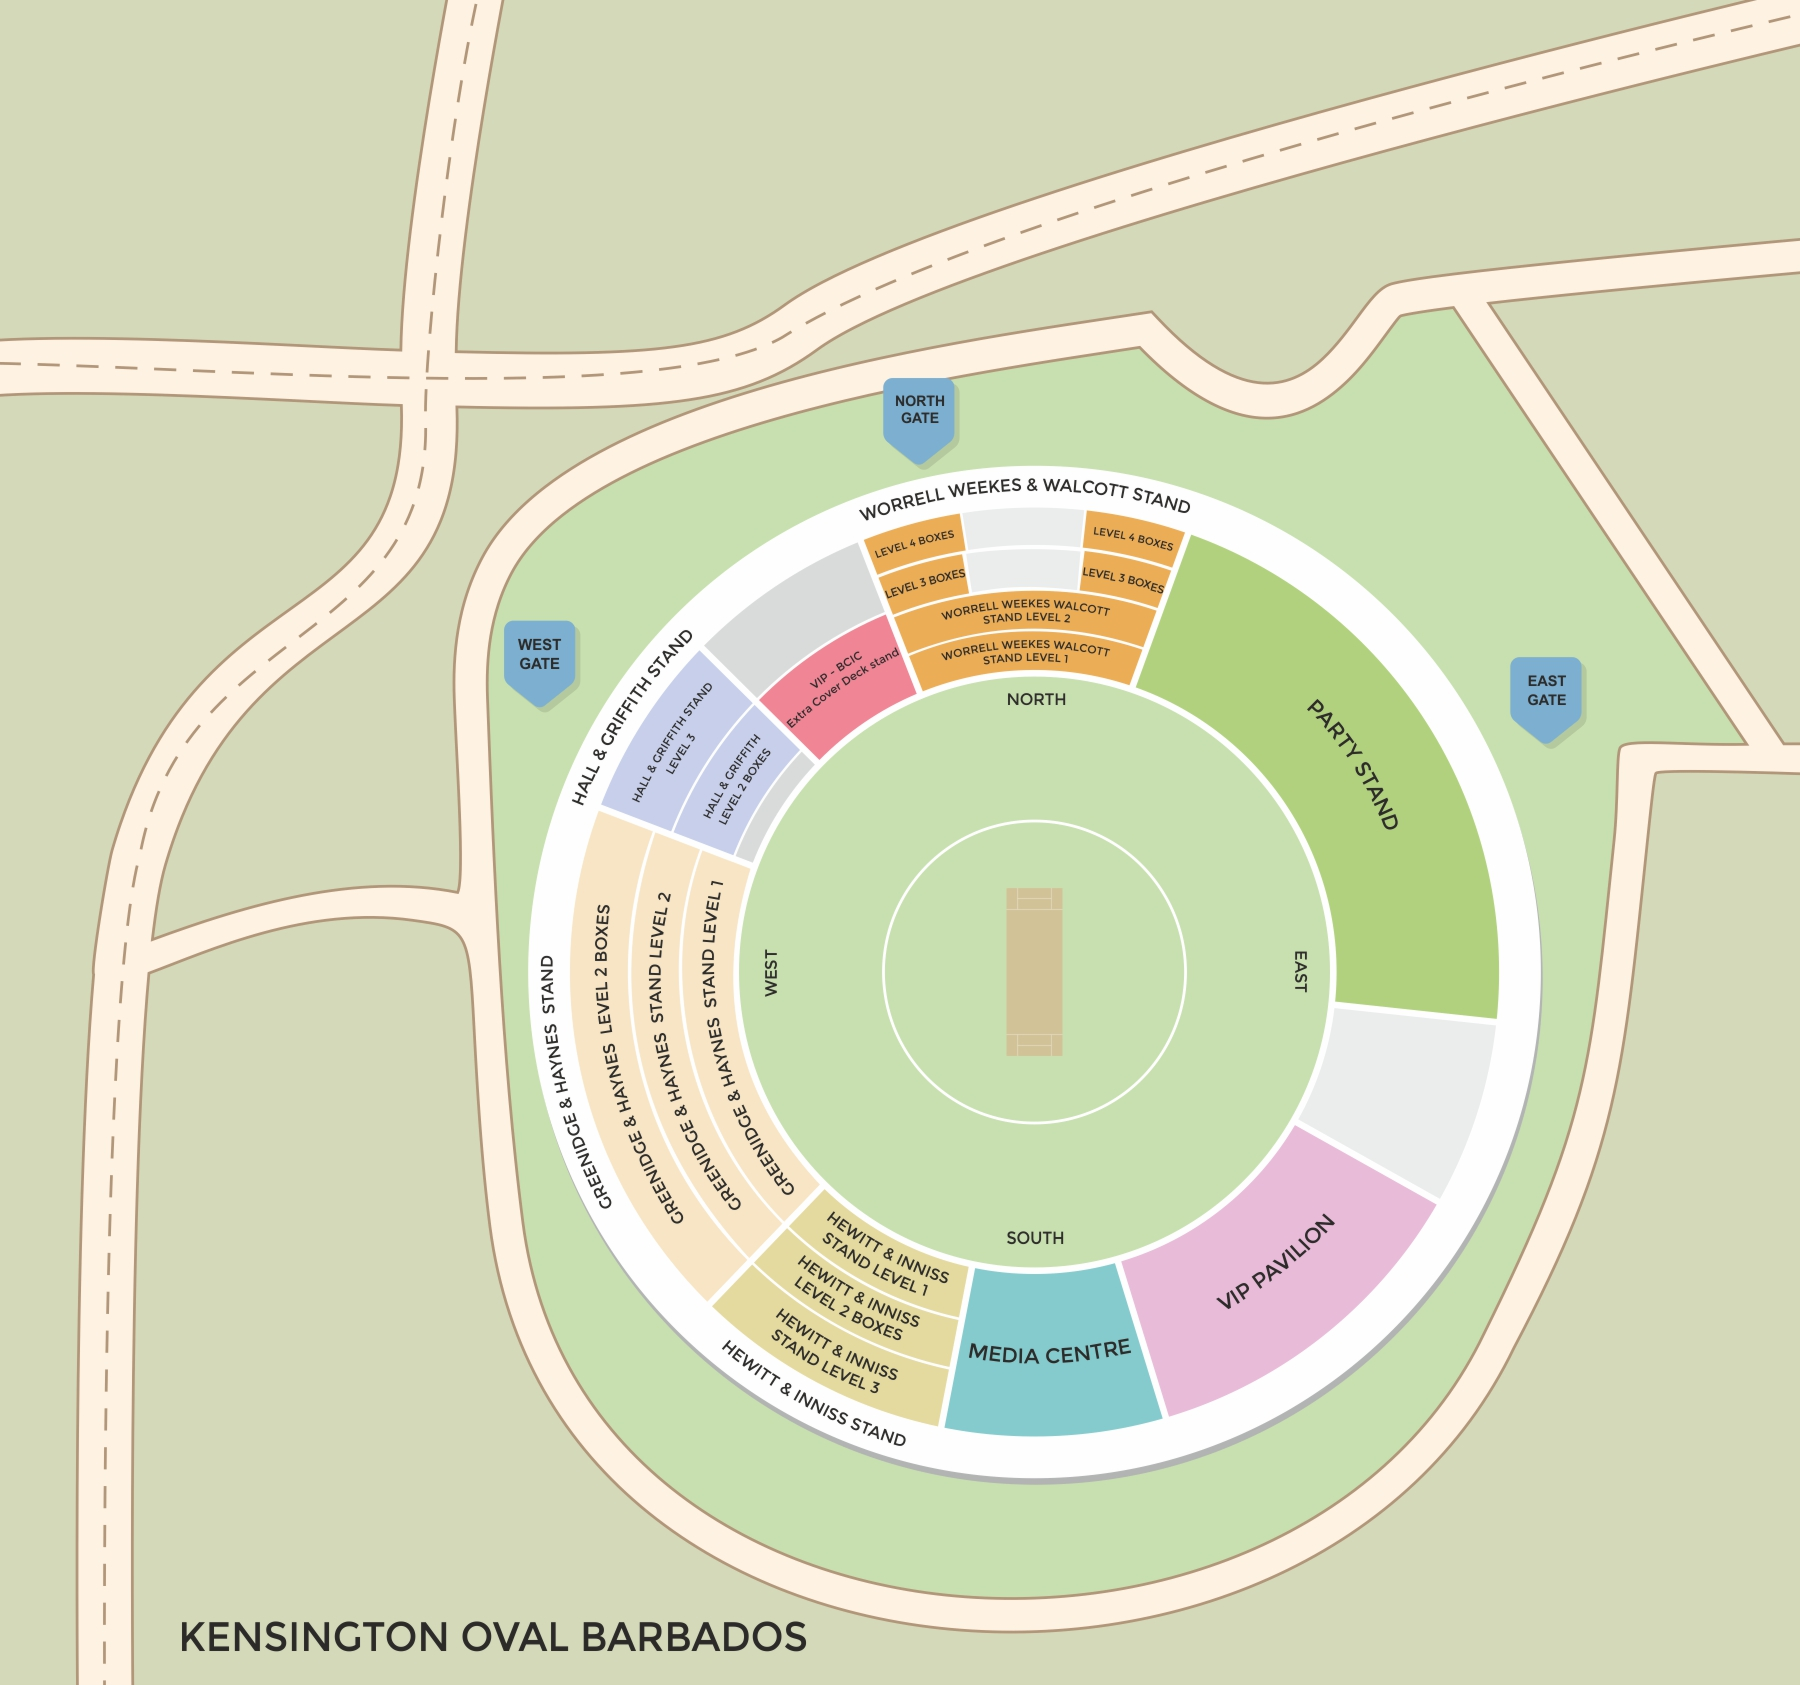 Kensington Oval Barbados Seating Plan Kensington Oval